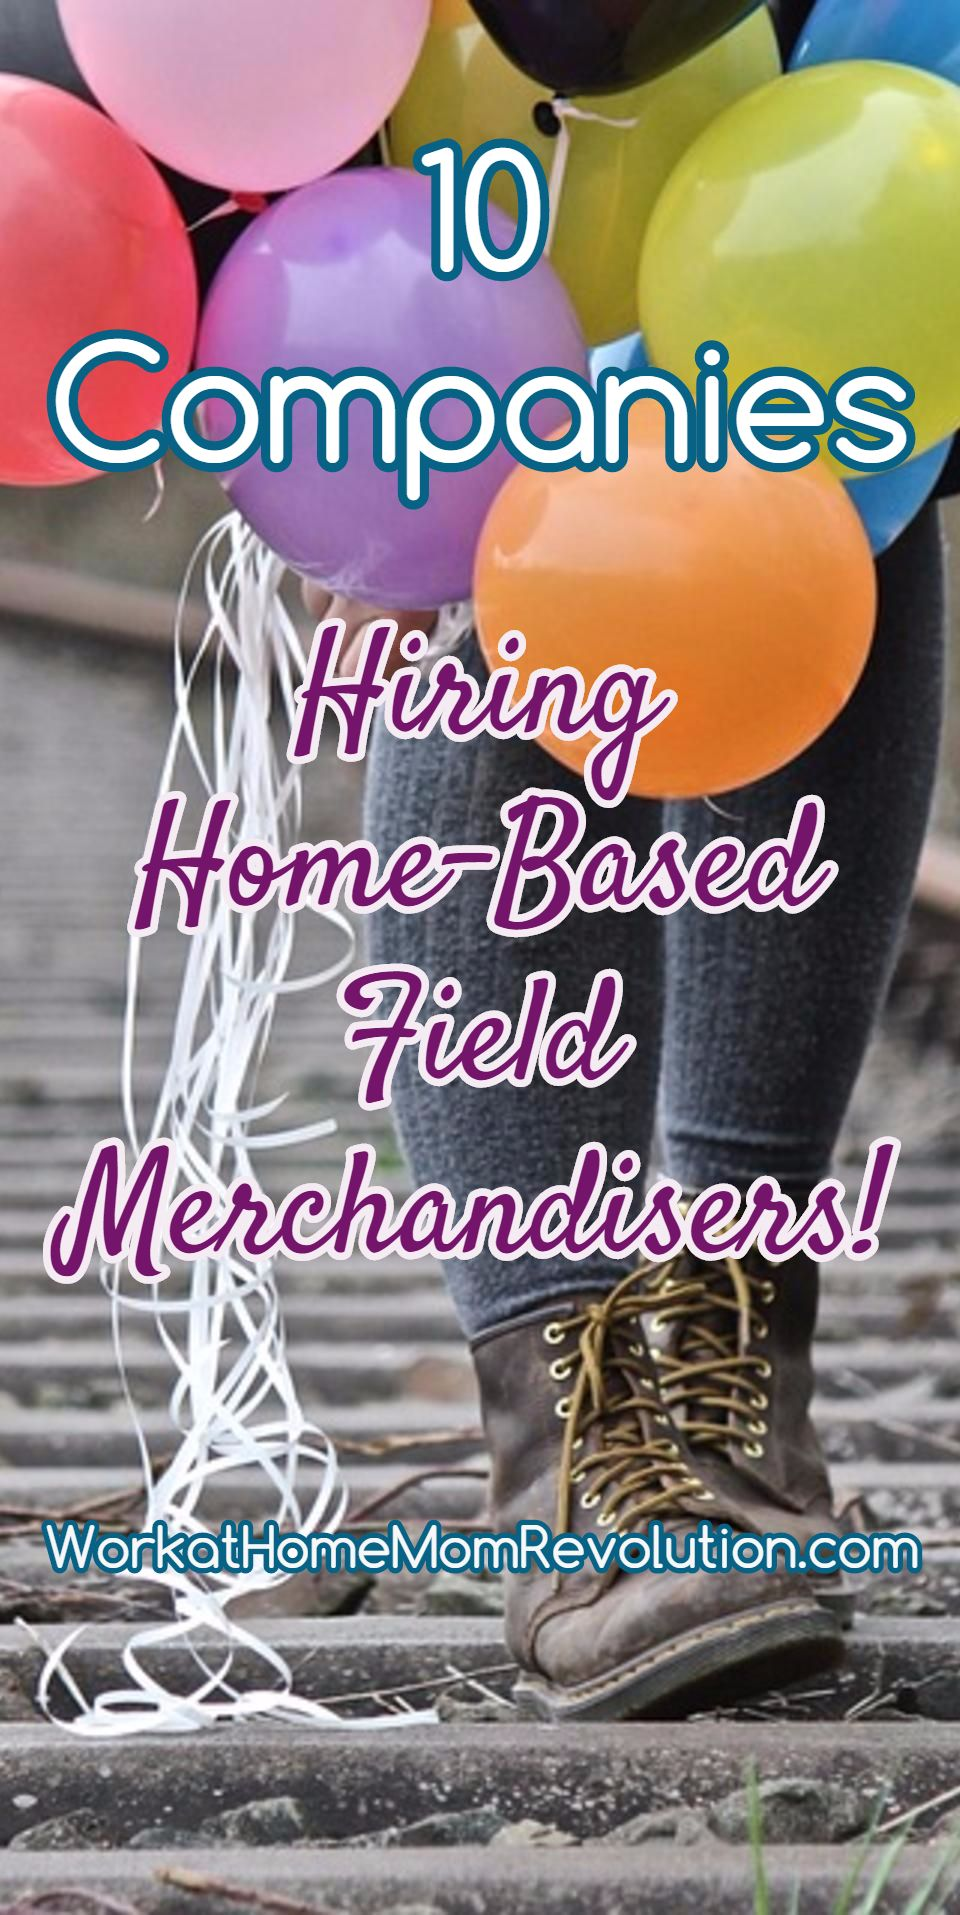 10 Companies That Hire Home Based Field Merchandisers Making Money